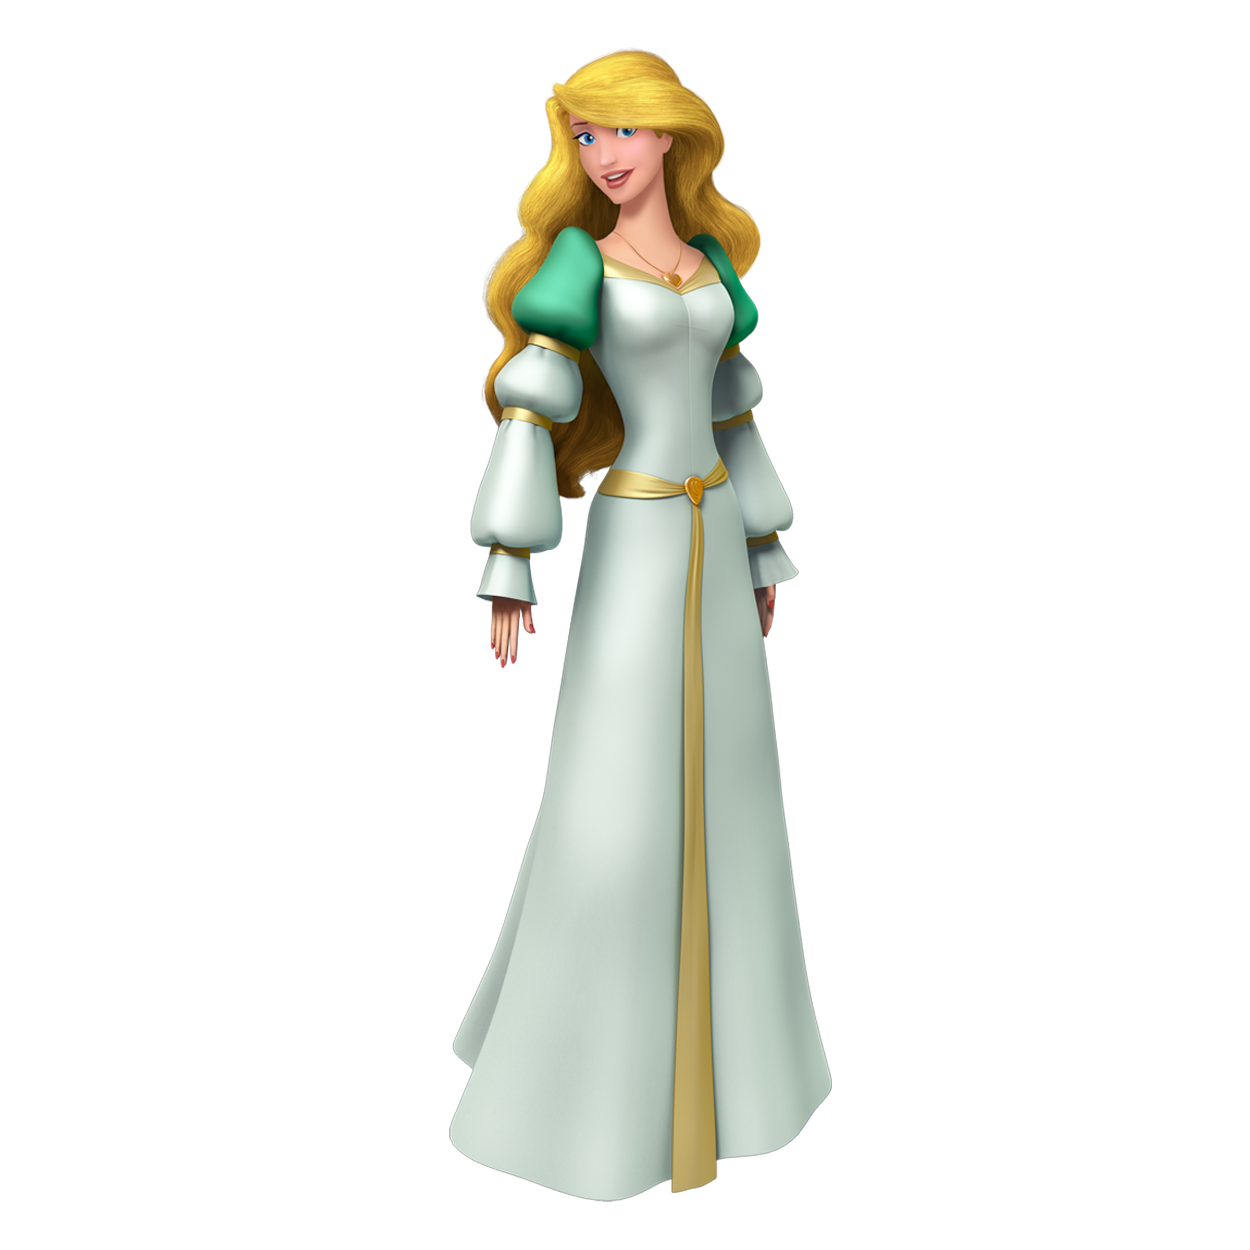 odette the swan princess wiki fandom powered by wikia